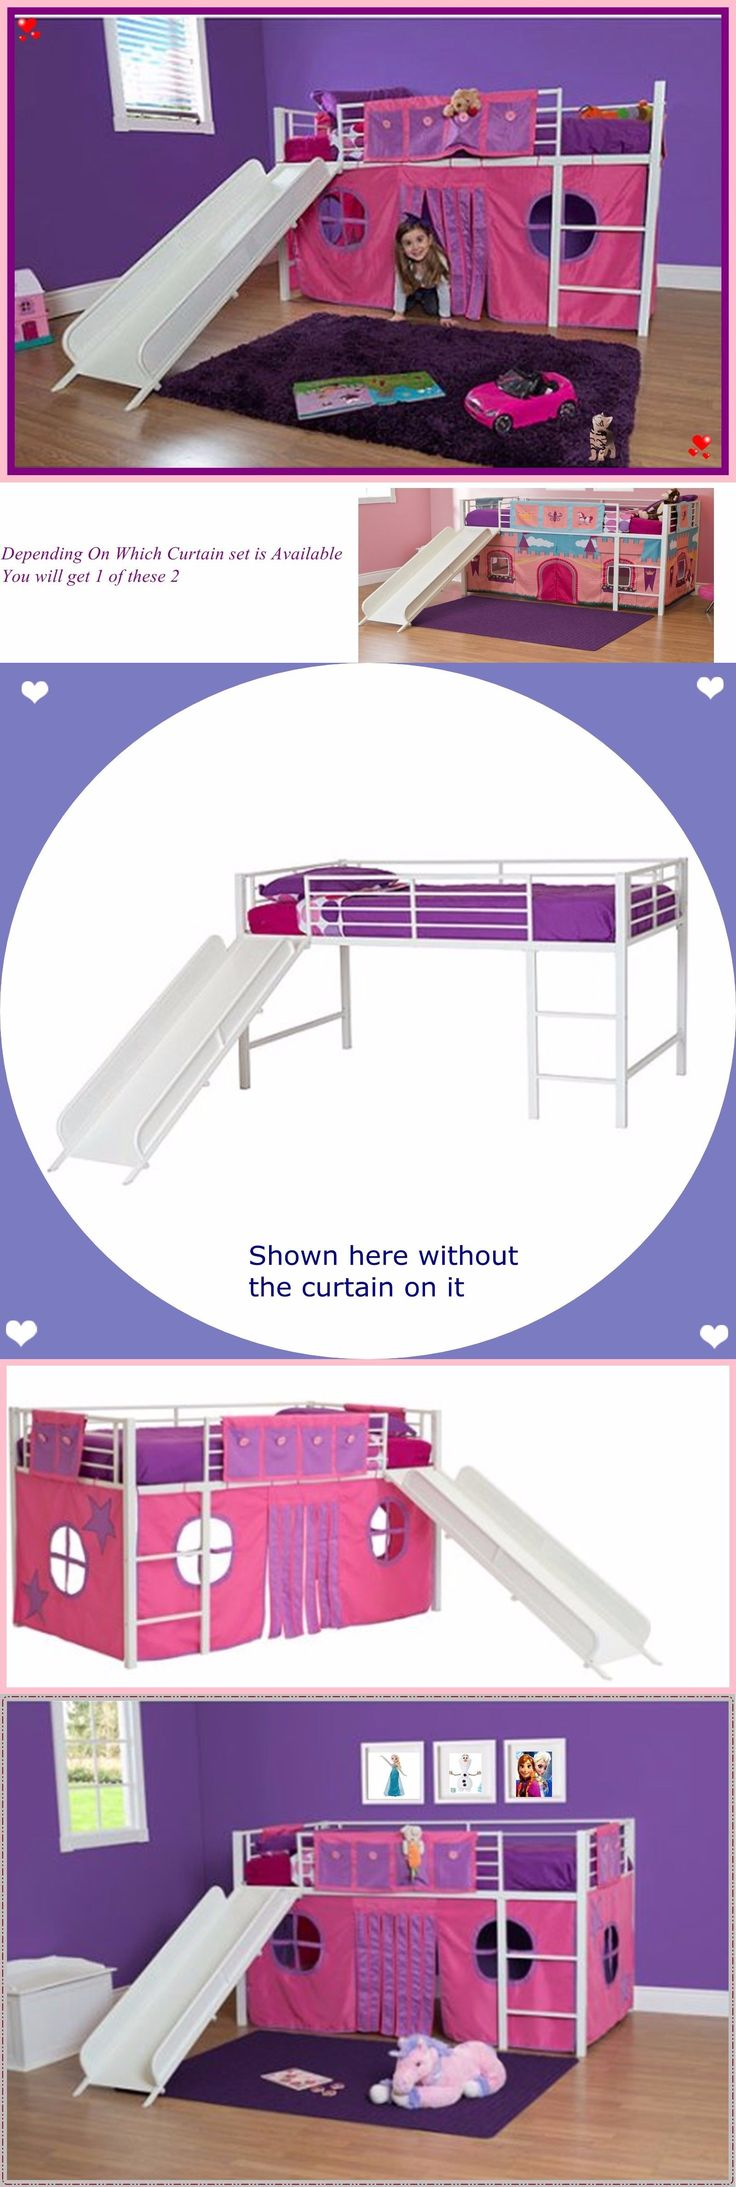 Kids Furniture: Girls Twin Loft Bed With Slide White Bunk Pink Playhouse Curtains Kids Furniture BUY IT NOW ONLY: $252.59